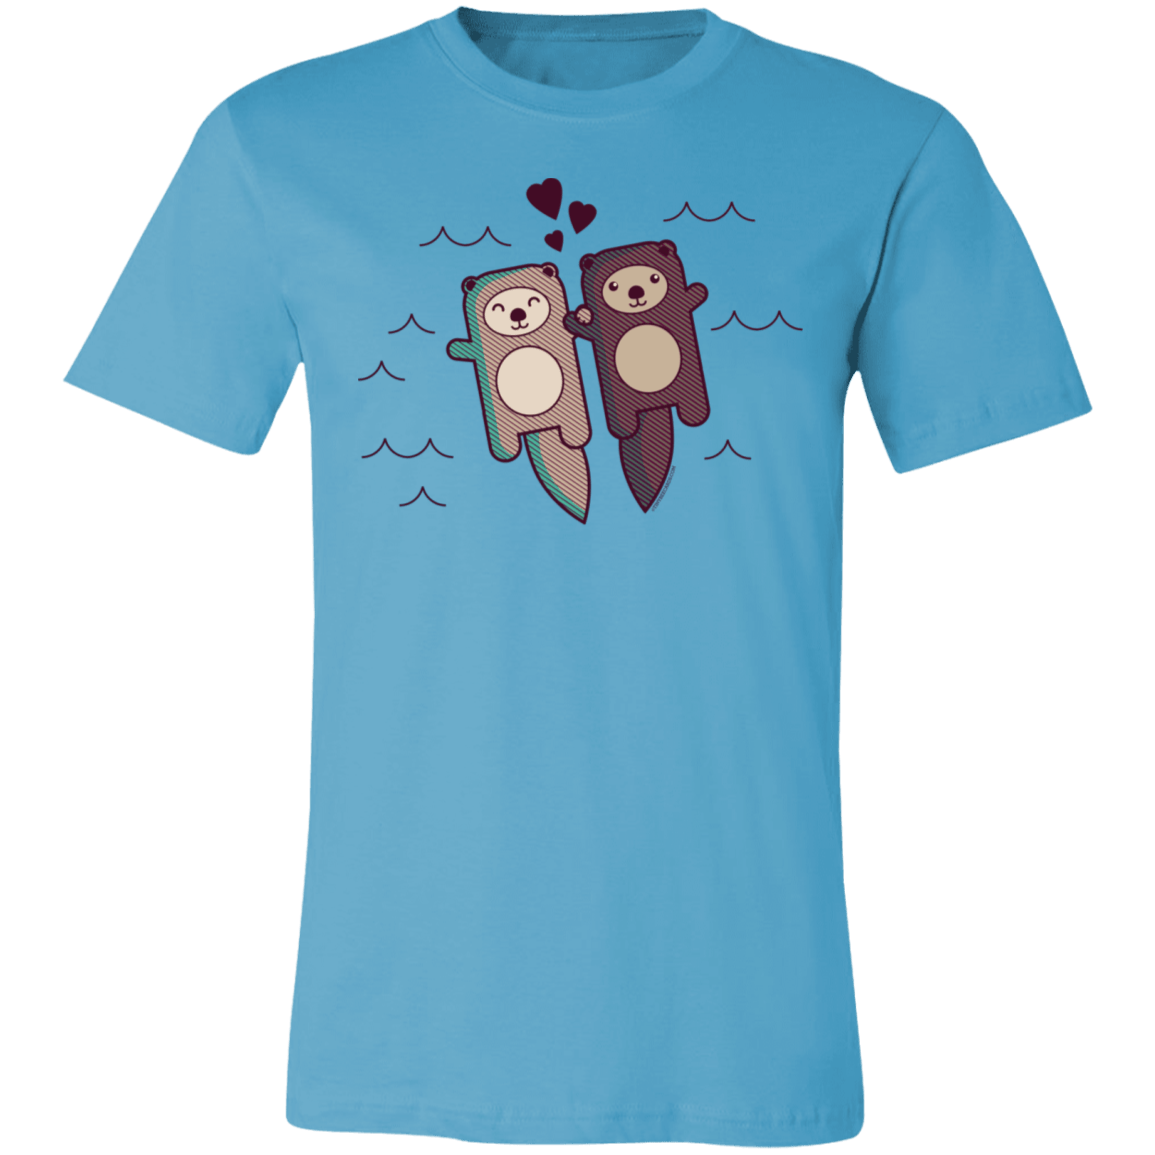 Significant Otter T-Shirt - Cute Dose